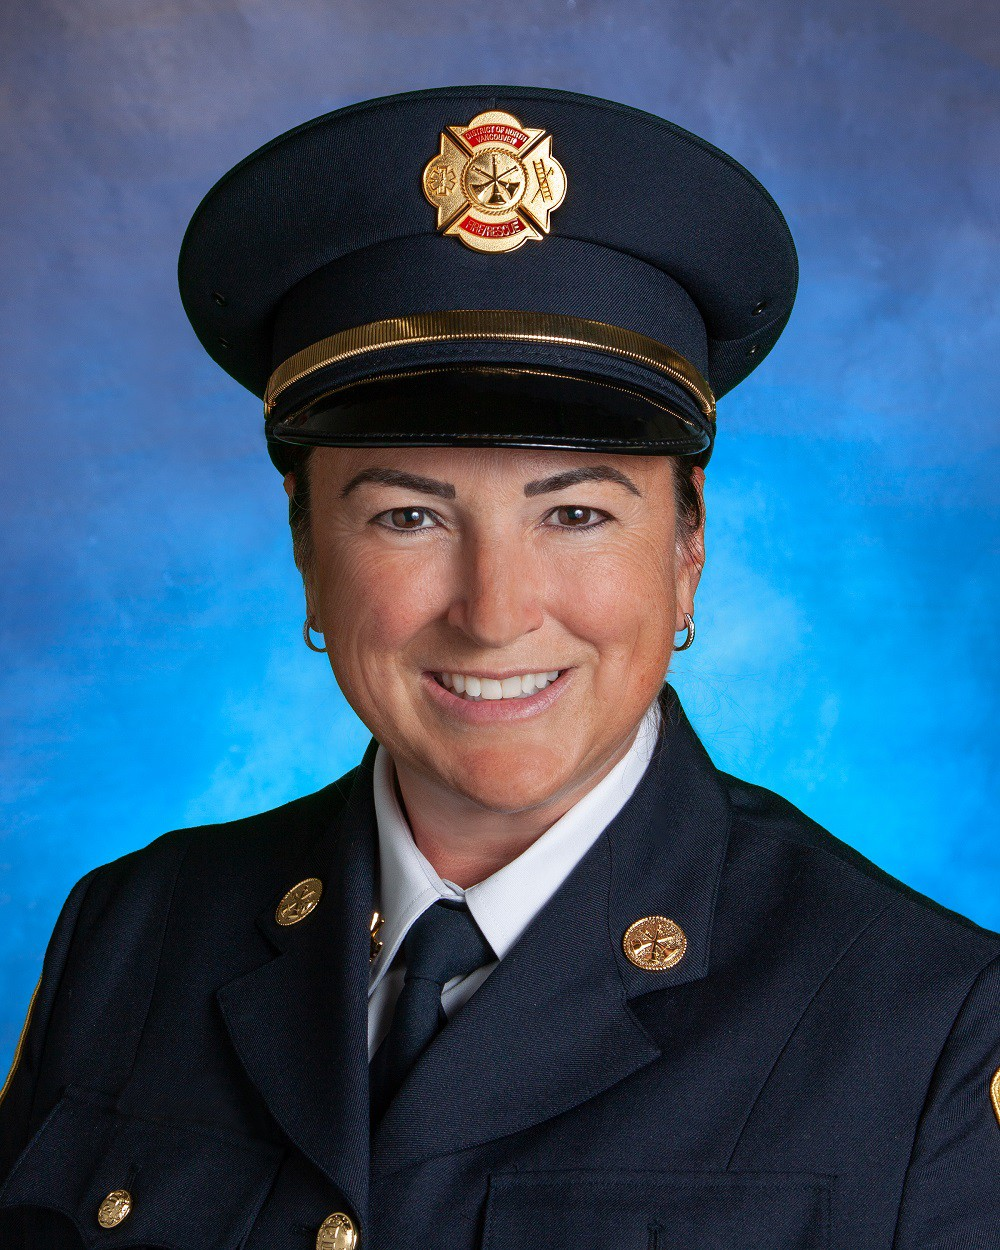 Assistant fire chief Haida Fortier